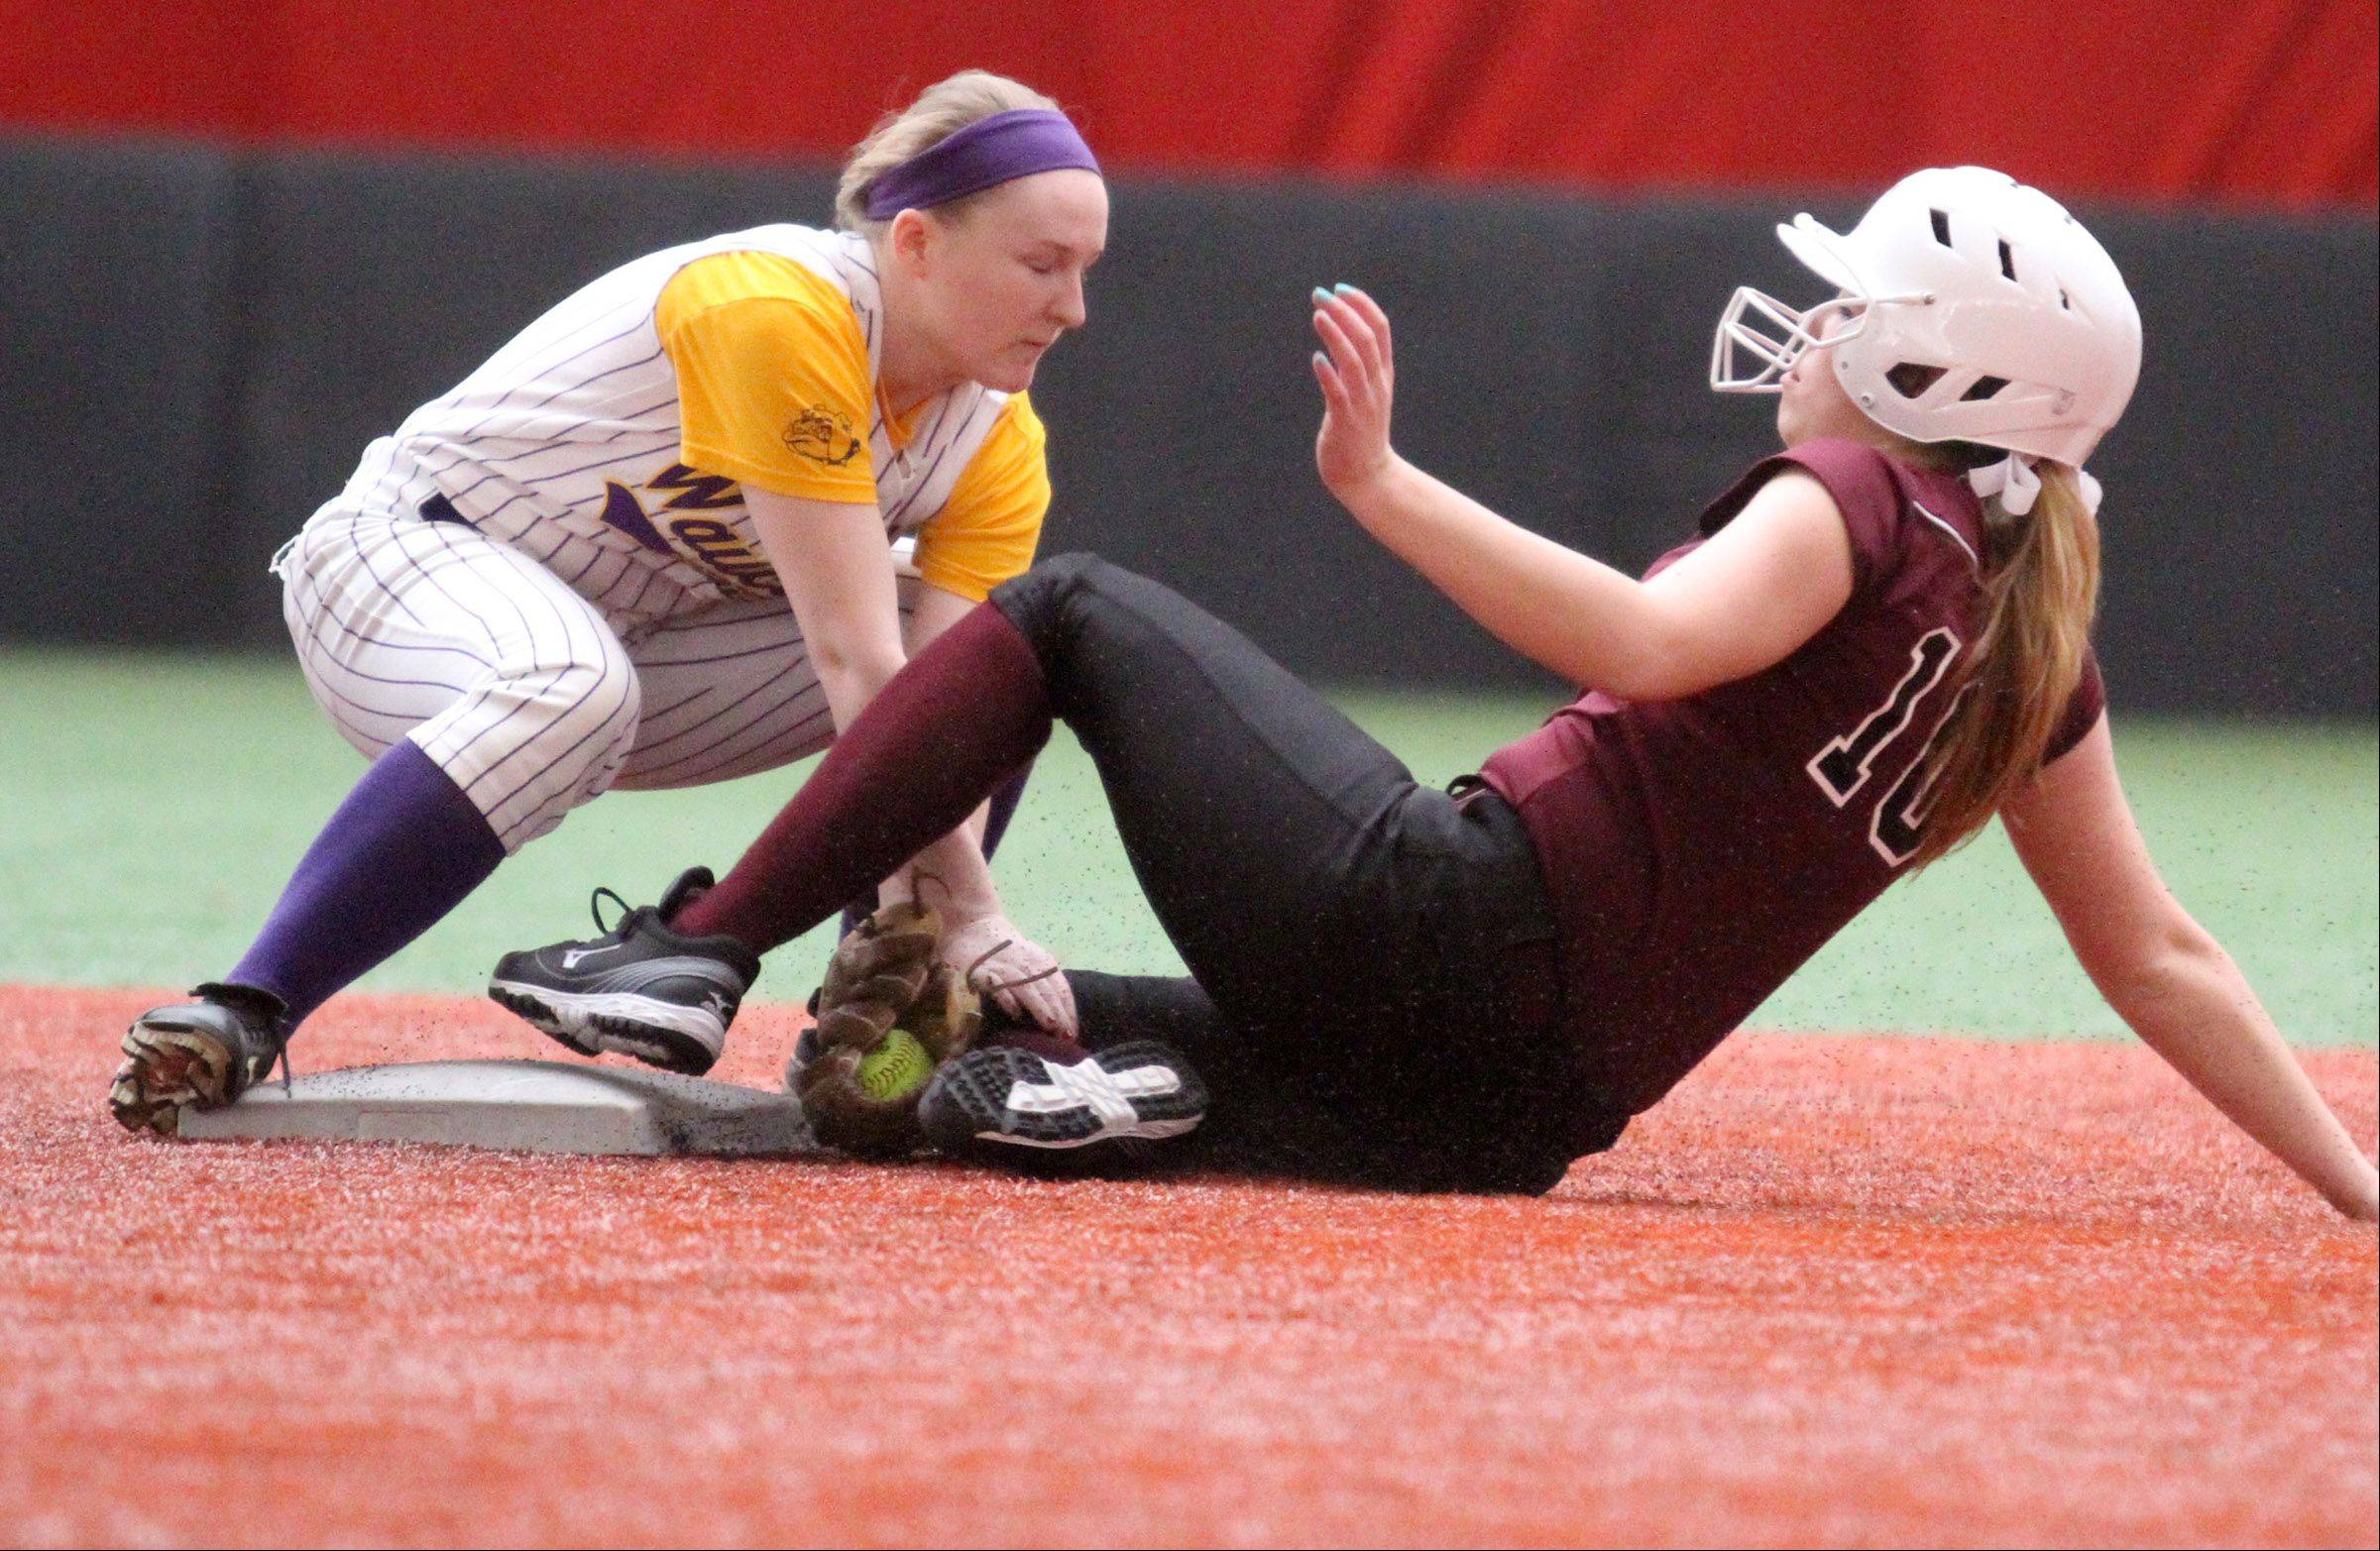 Marengo's Megan Semro slides out into second base as Wauconda's Lauren Nee applies the tag at The Dome in Rosemont on Friday, March 22, 2013.